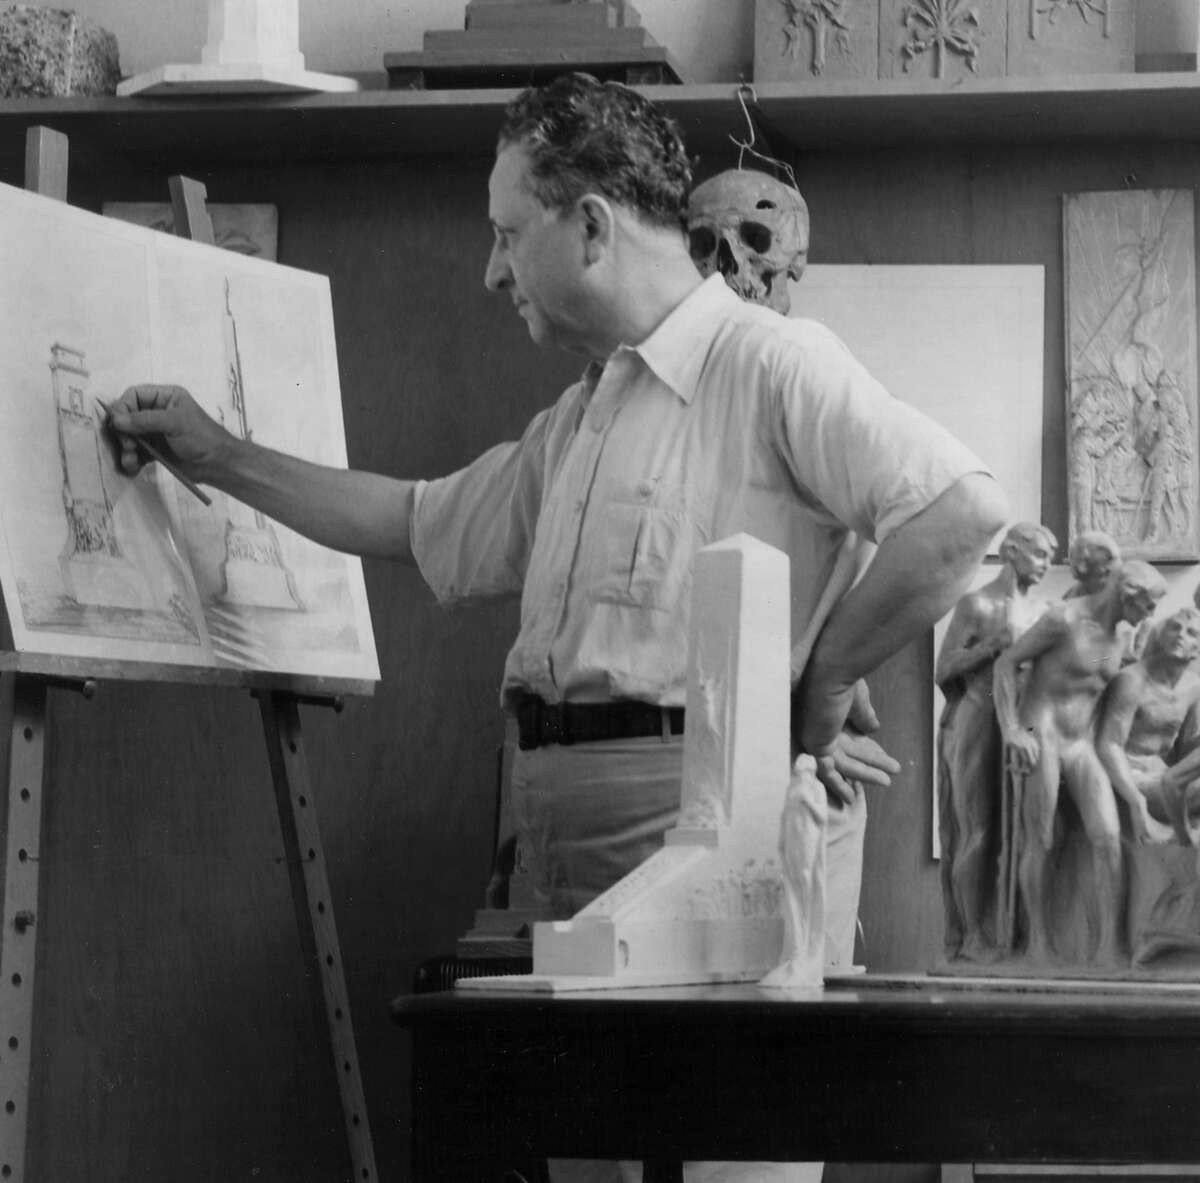 Sculptor Pompeo Coppini works on an illustration of the Alamo Cenotaph, which now stands in front of the Alamo in Alamo Plaza. To his side is a preliminary model of the sculpture.